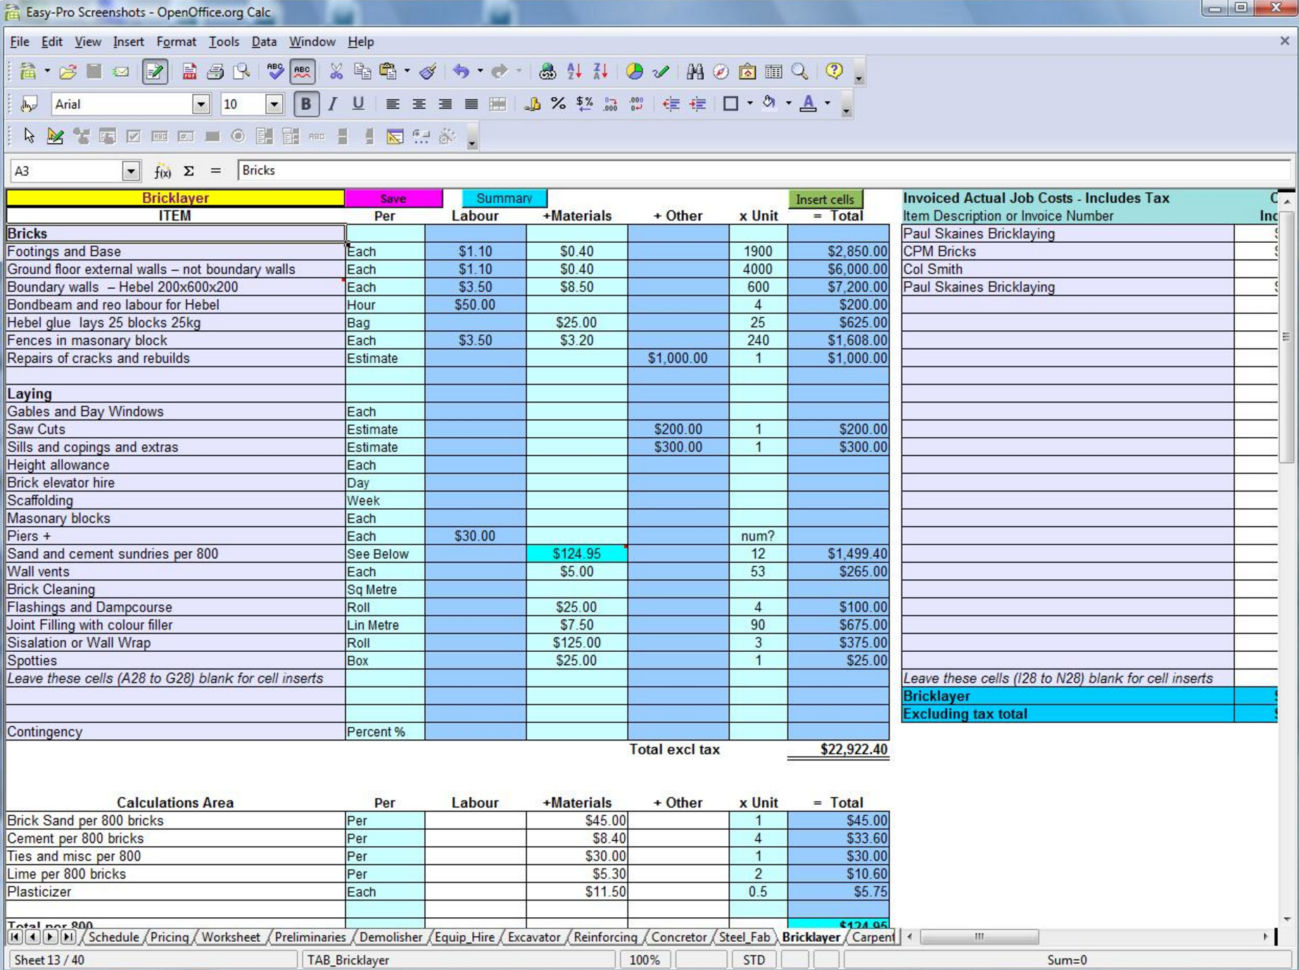 Sample Construction Estimate Spreadsheet For 5 Free Construction Estimating  Takeoff Products Perfect For Smbs